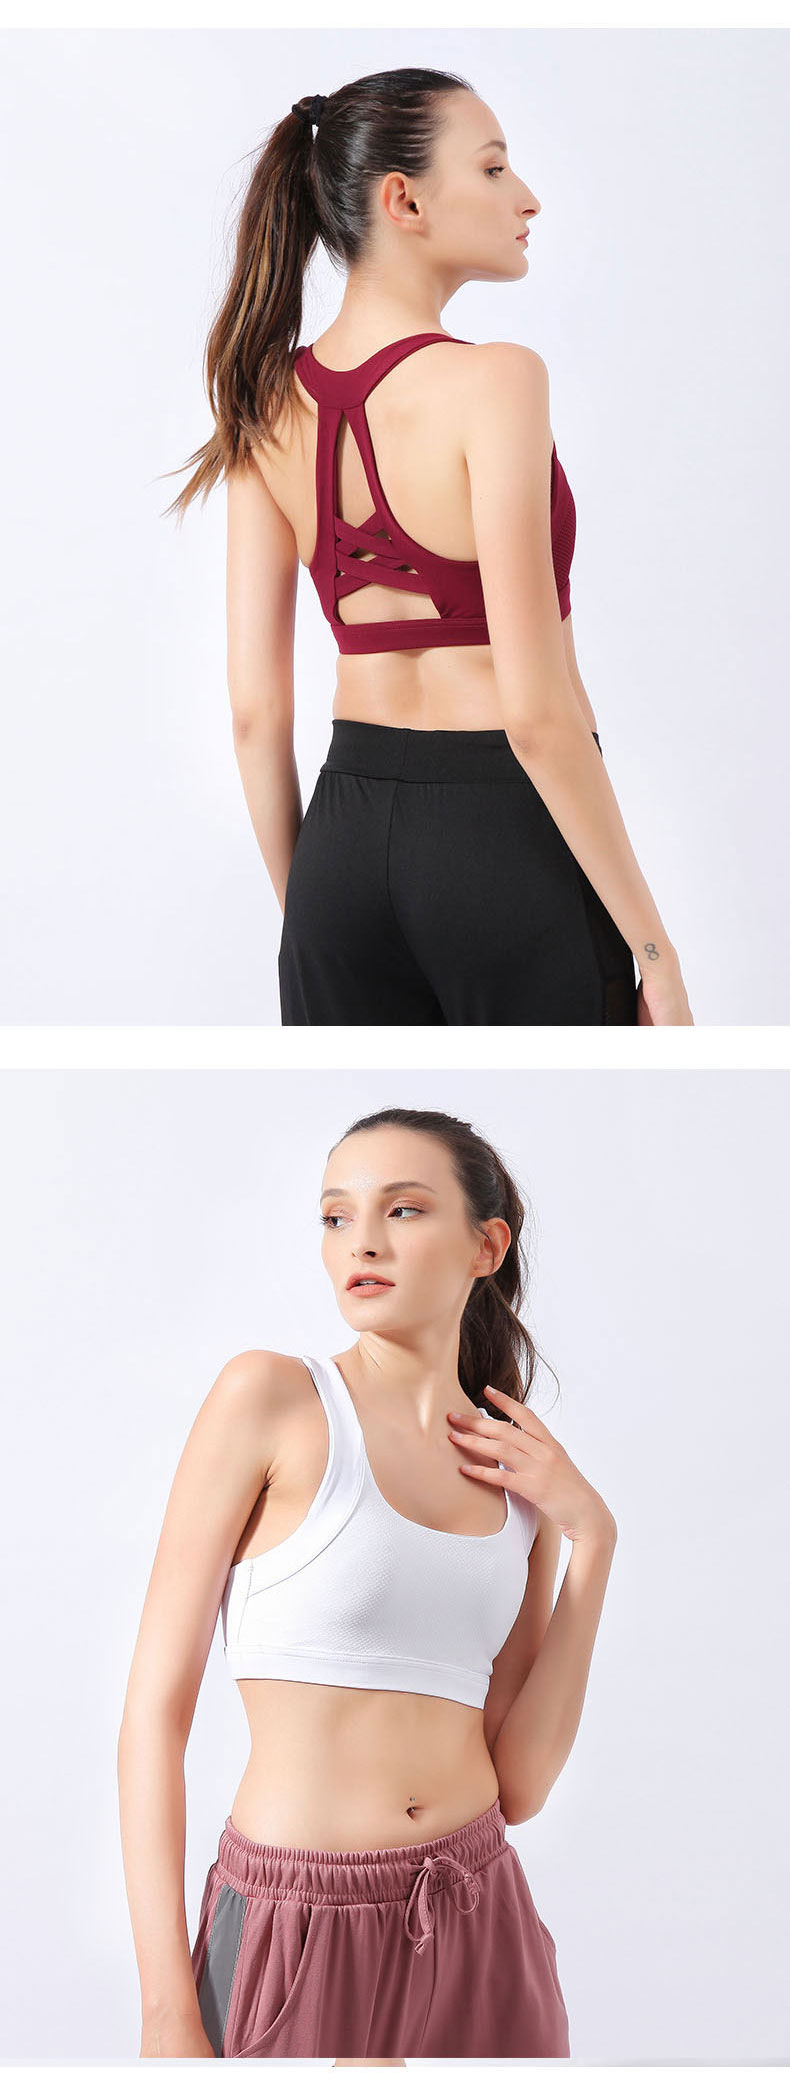 New Women Yoga Tops Fitness Breathable Running Shirts High Quality Push Up Sport Bra Wholesales